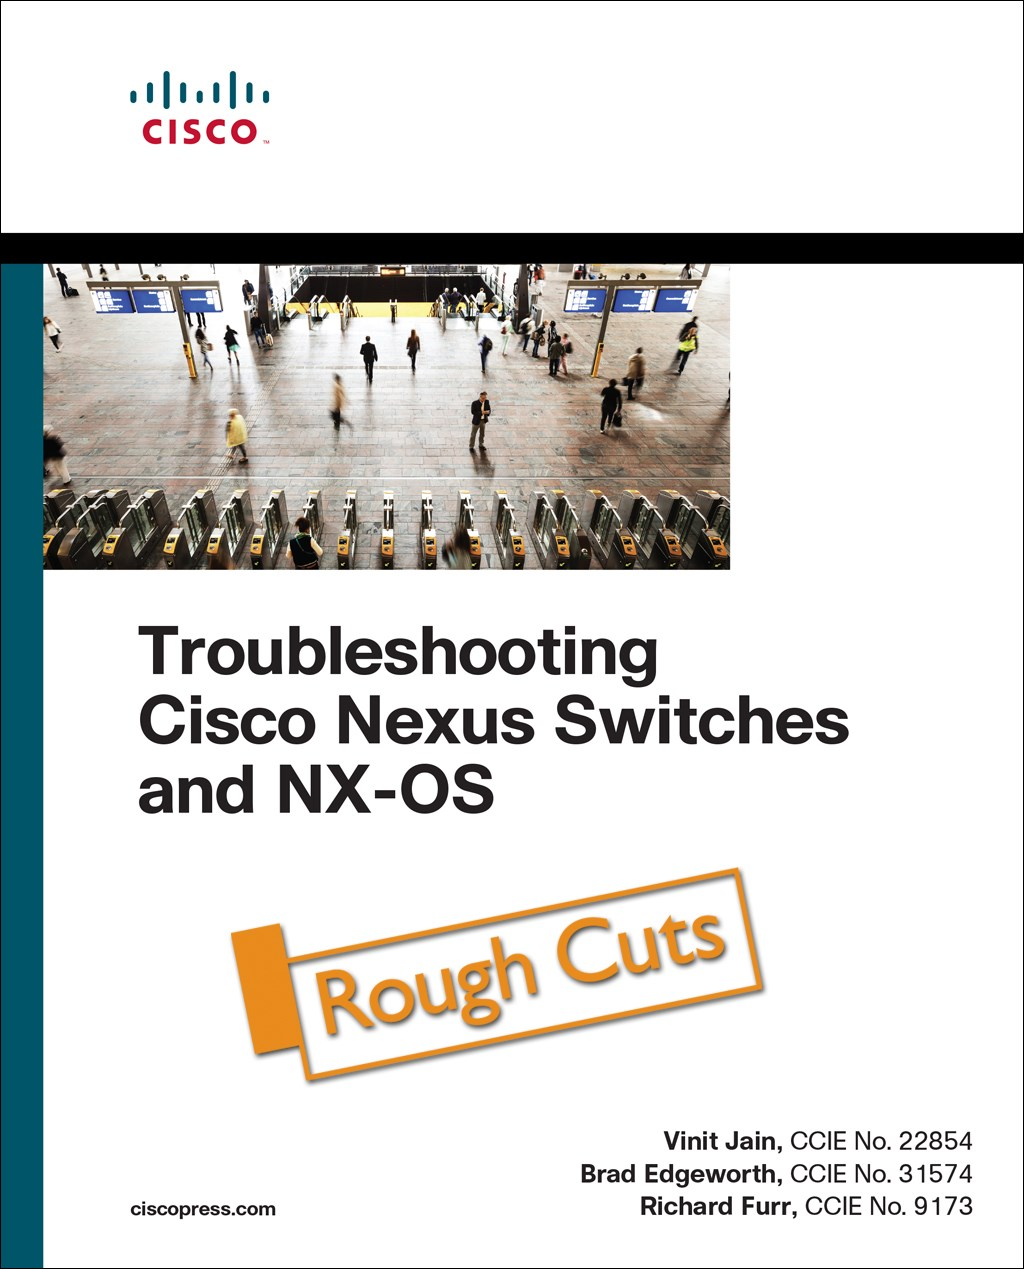 Troubleshooting Cisco Nexus Switches and NX-OS, Rough Cuts